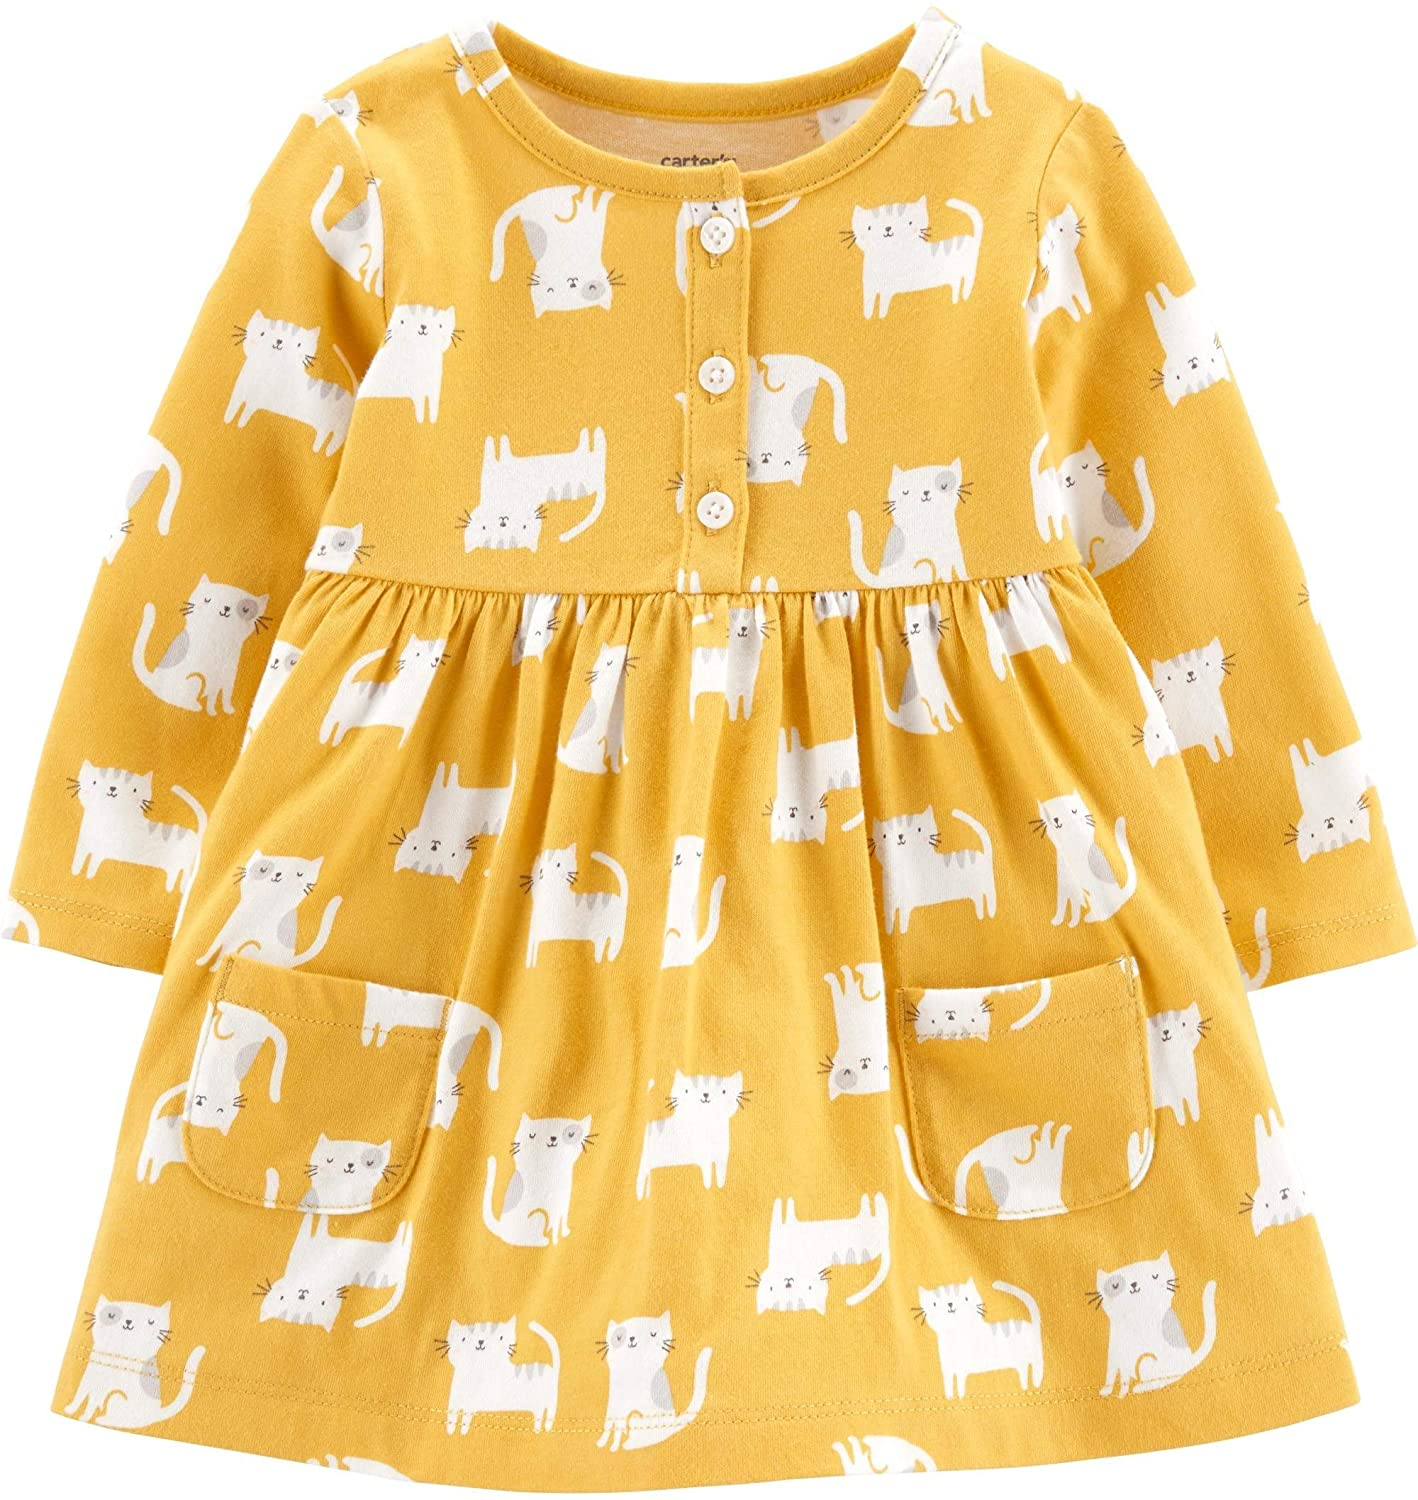 Carter's Baby Girls Gold Kitty Cat Cotton Knit Dress & Diaper Cover